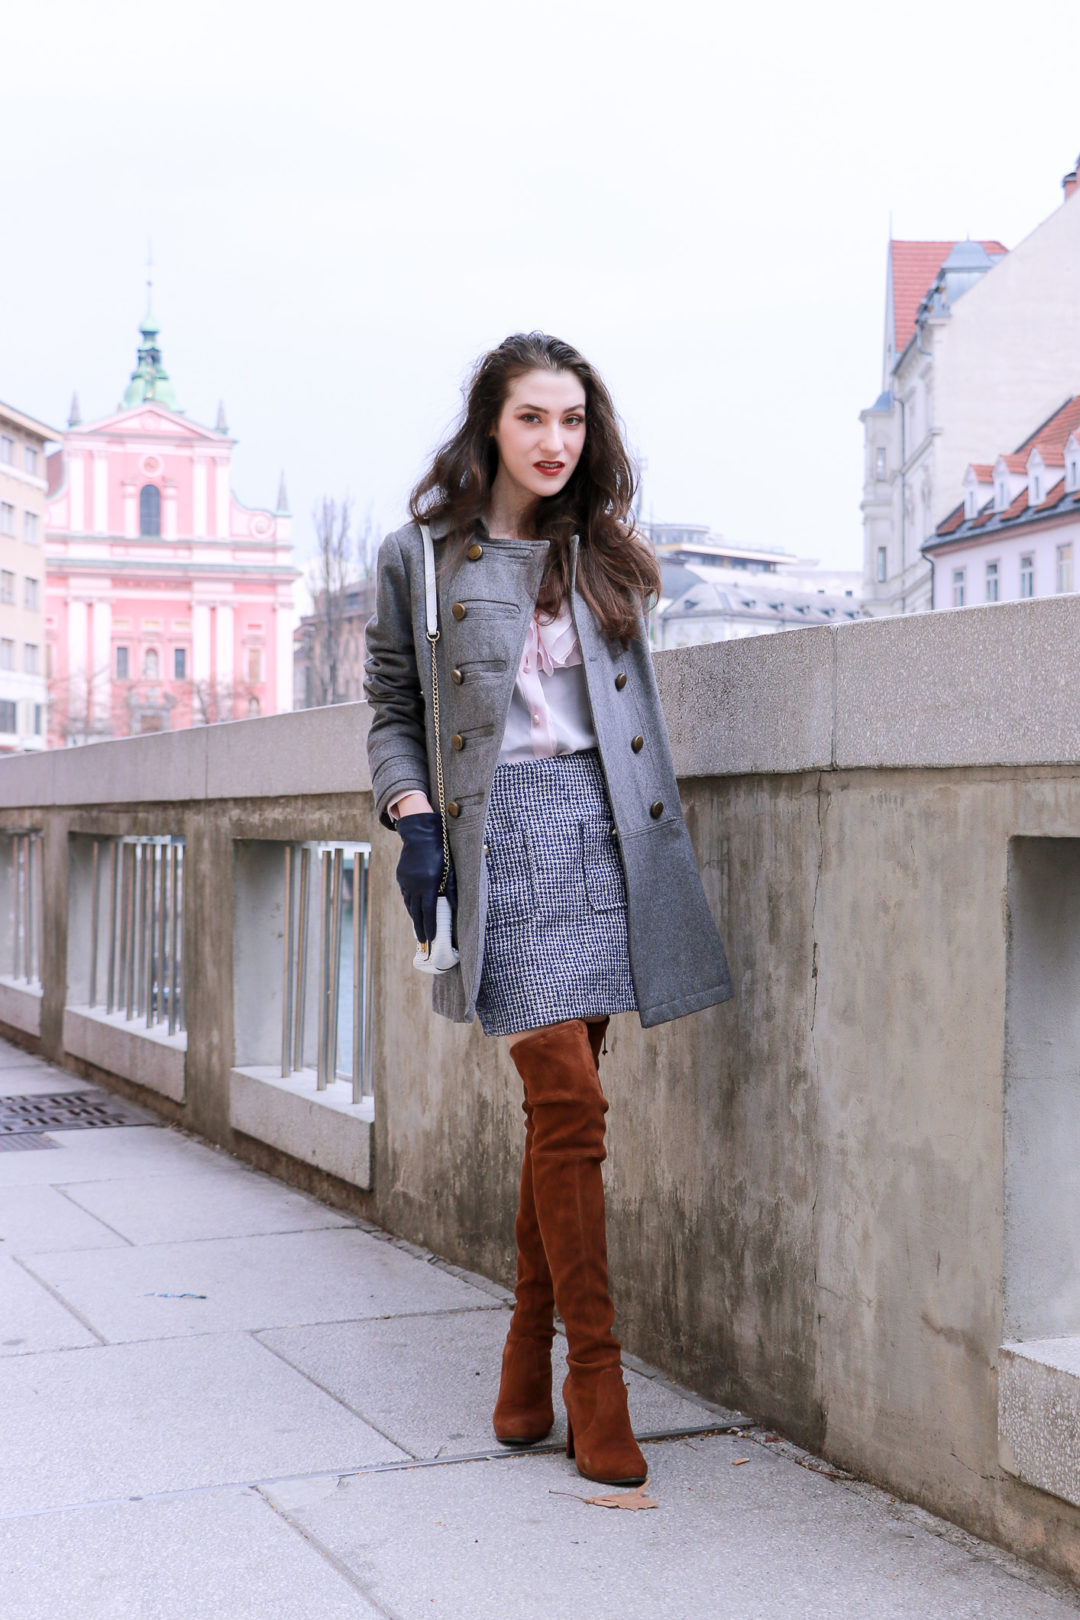 Fashion blogger Veronika Lipar of Brunette From Wall Street sharing how to wear white mini bag, brown otk boots, mini blue tweed skirt, pink top and grey coat for a coffee date with friends